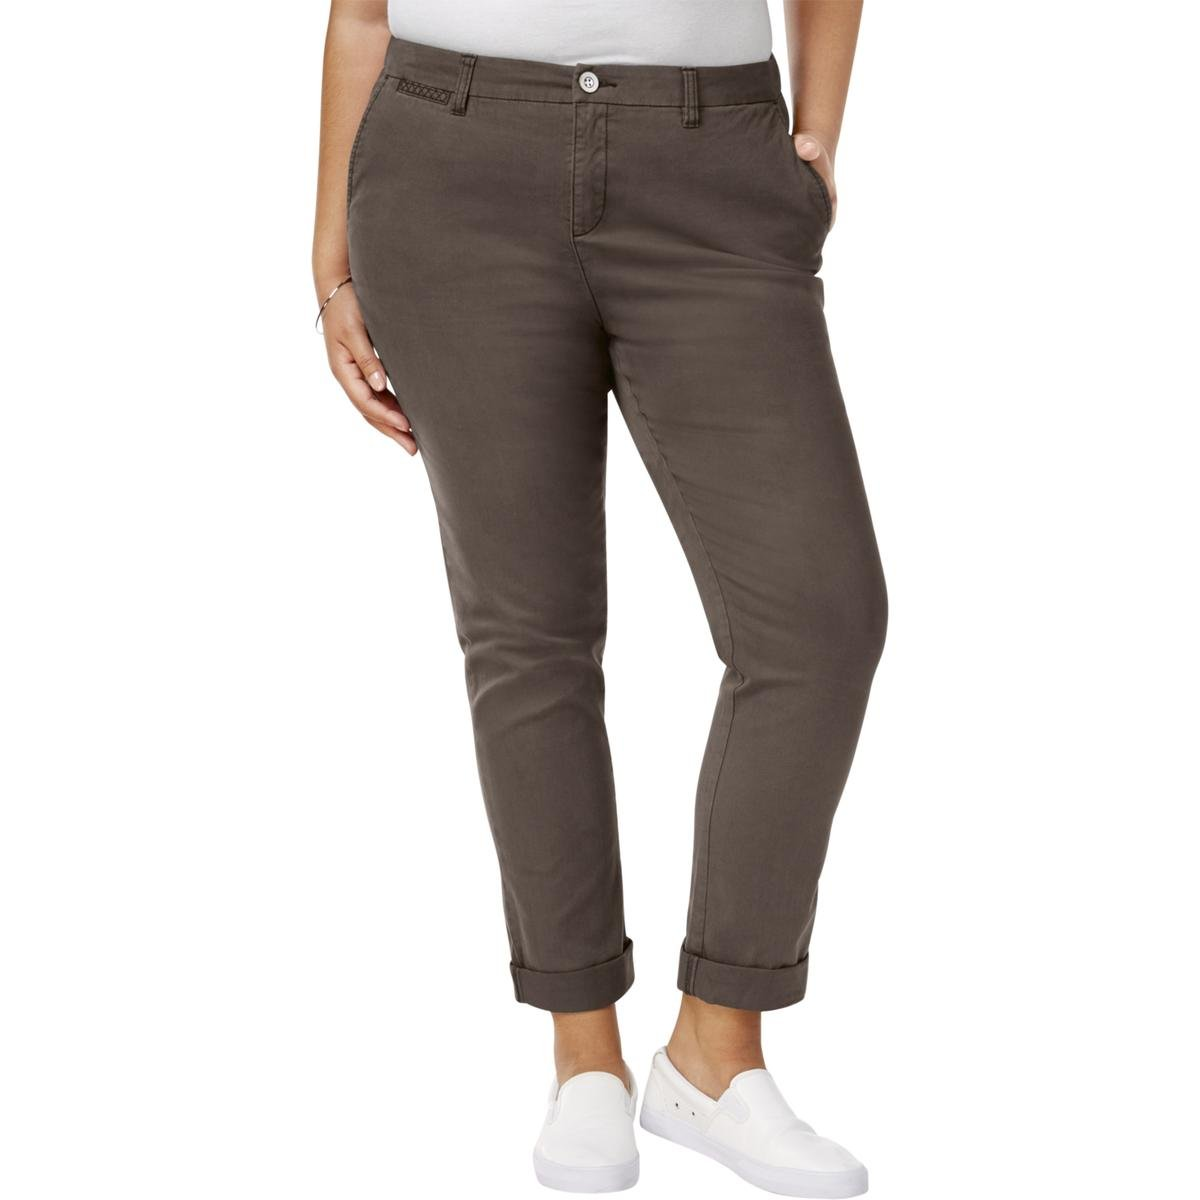 Style & Co. Womens Plus Twill Embroidered Cropped Pants Brown 14W